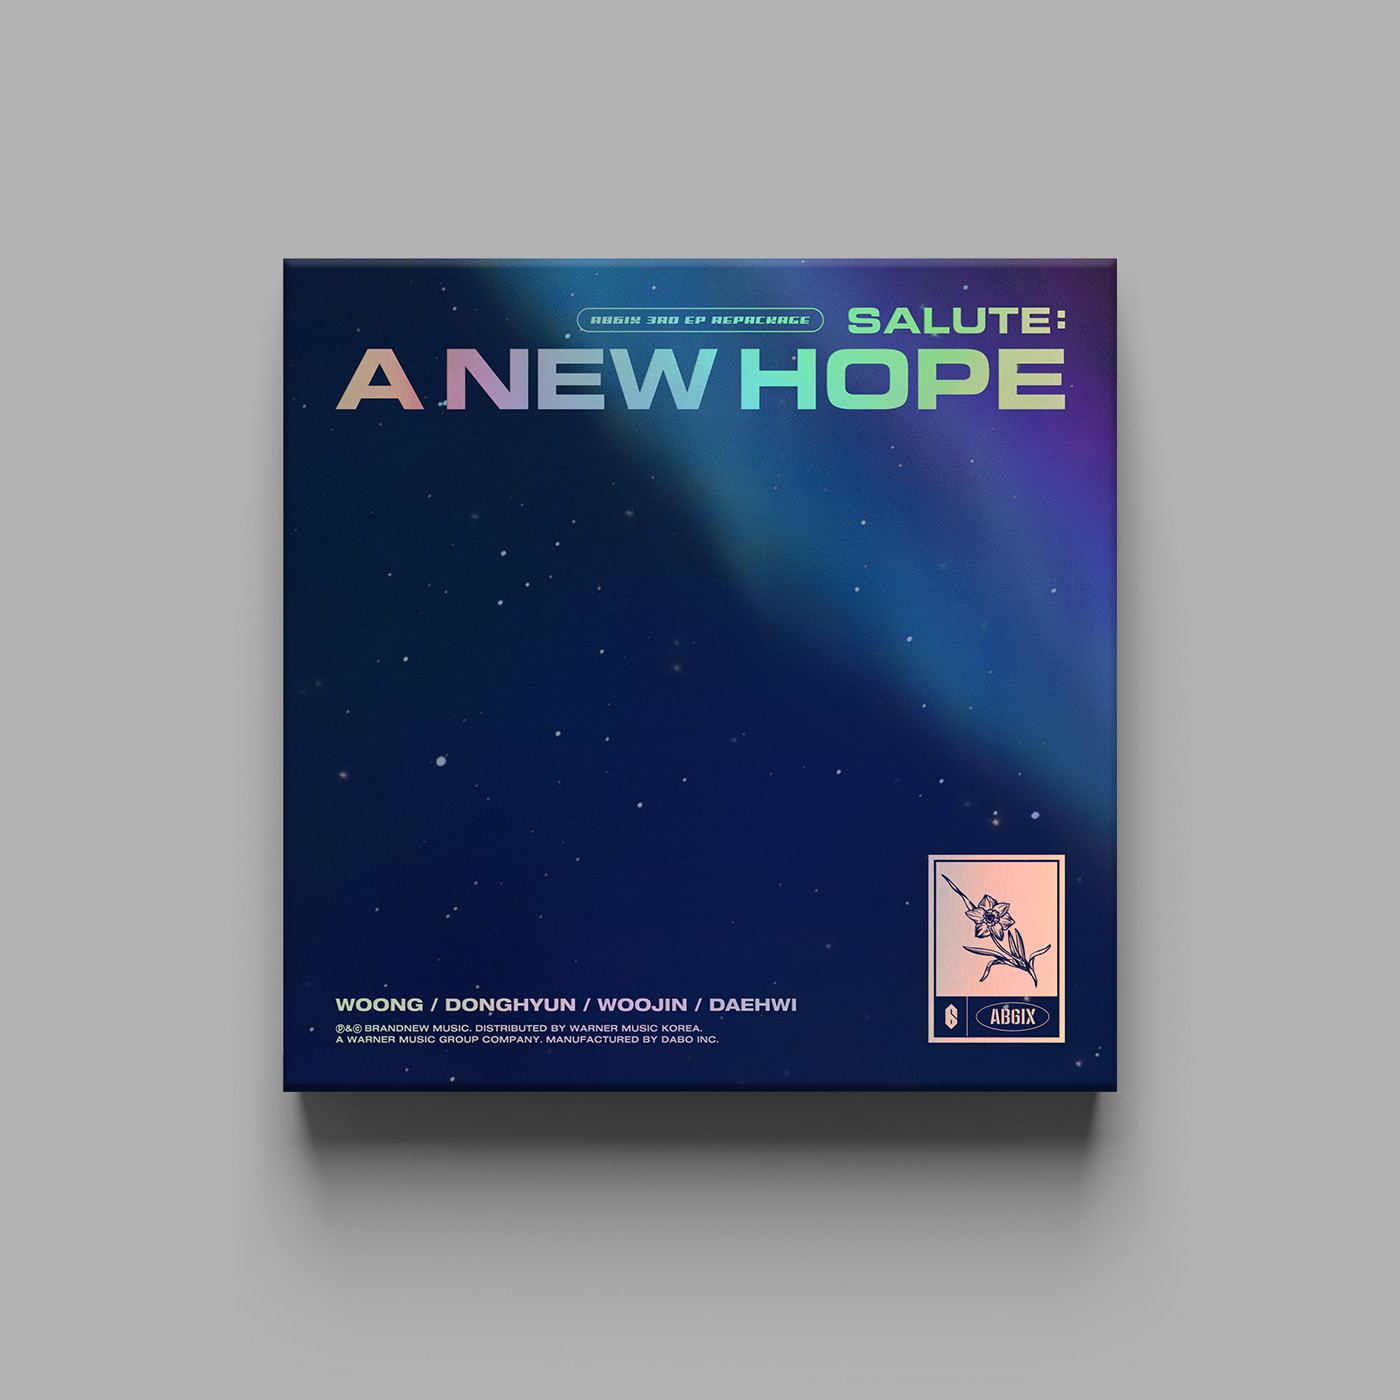 에이비식스(AB6IX) - 3RD EP REPACKAGE [SALUTE : A NEW HOPE] (NEW Ver.)케이팝스토어(kpop store)